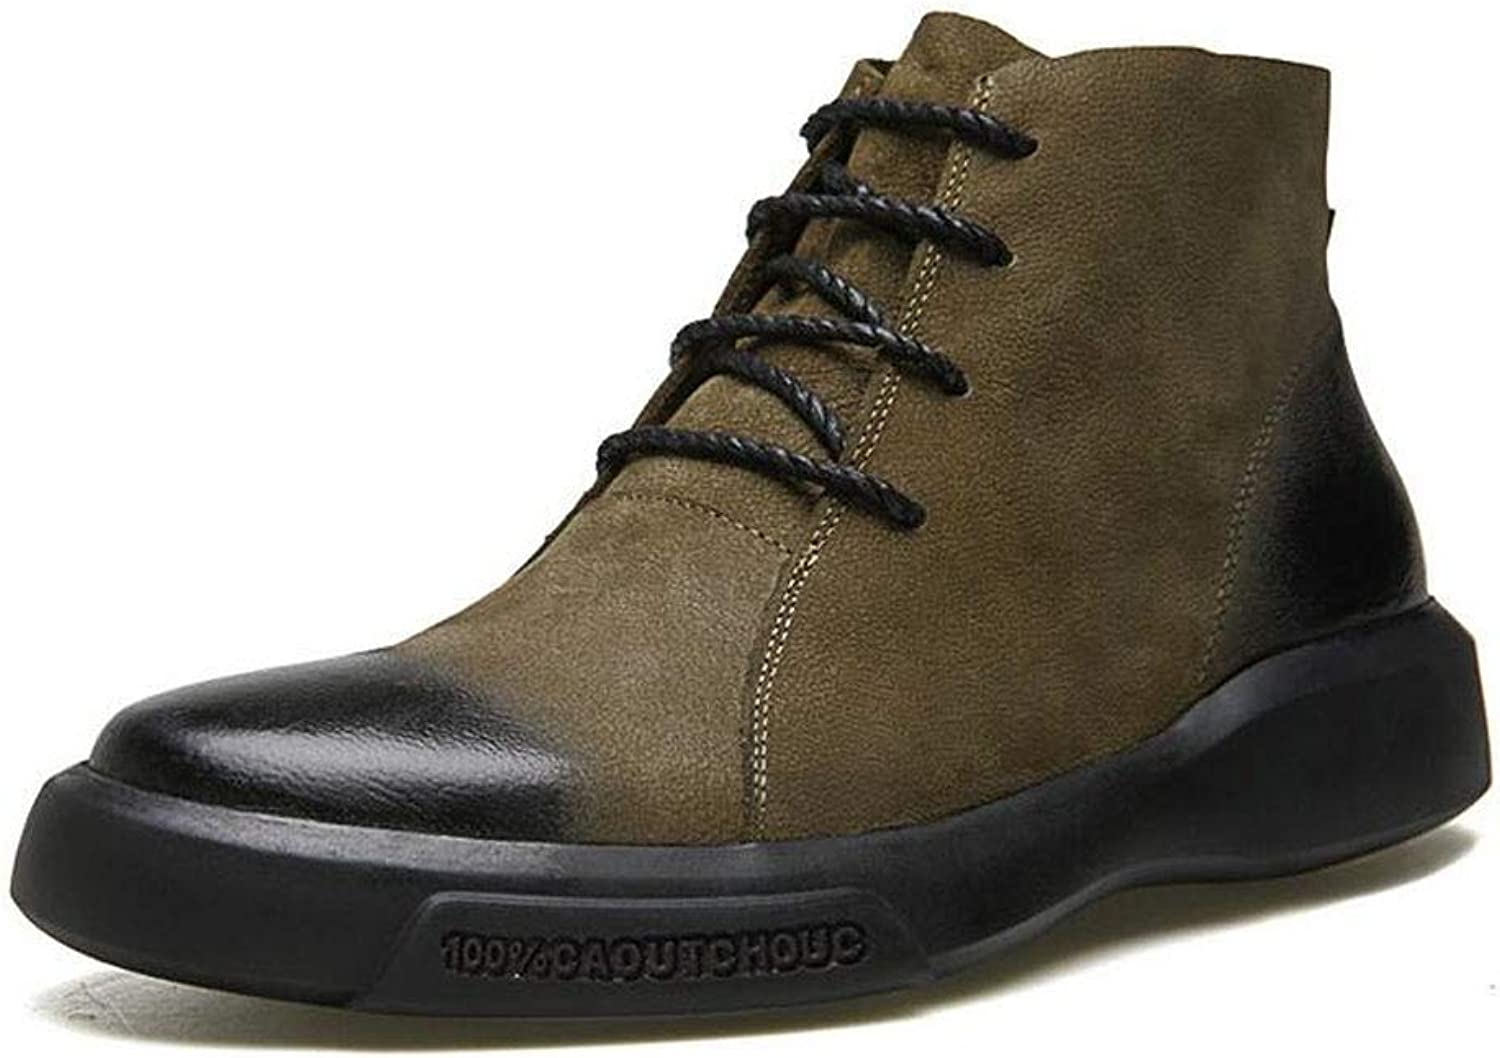 ZFAFN Men's Martin Boots Flat Boots Casual Lace-up Derby Boots Short-Shank Boots (without fluff inside), Khaki